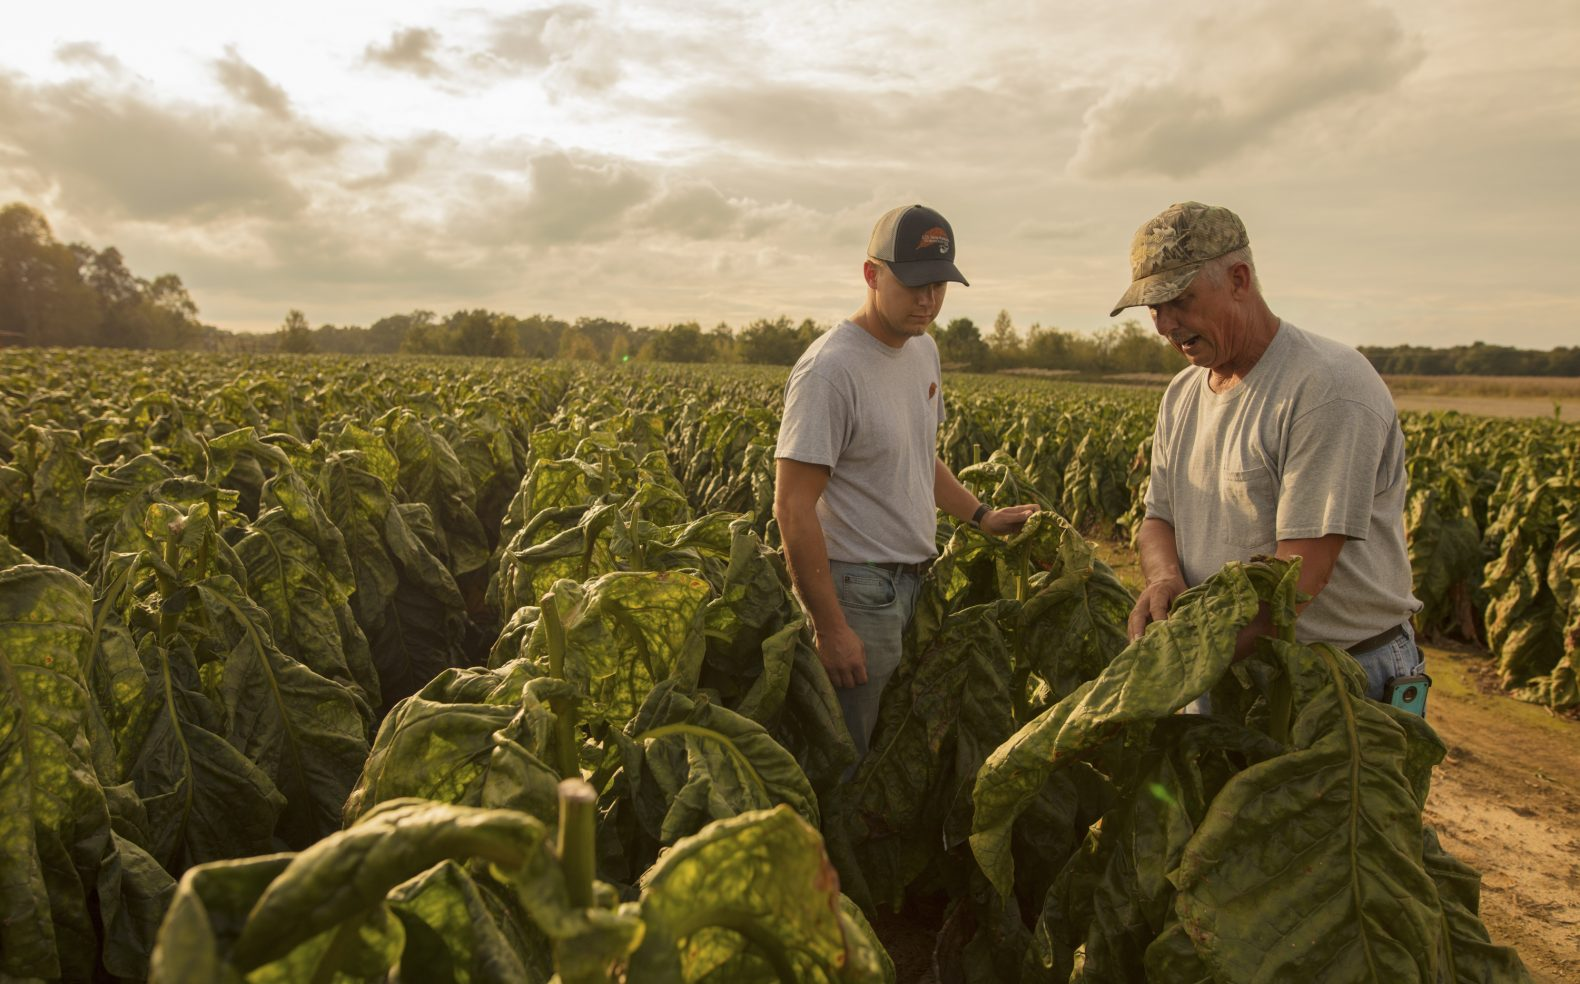 An older male farmer and younger male farmer standing in a tobacco field, examining the quality of a tobacco leaf.